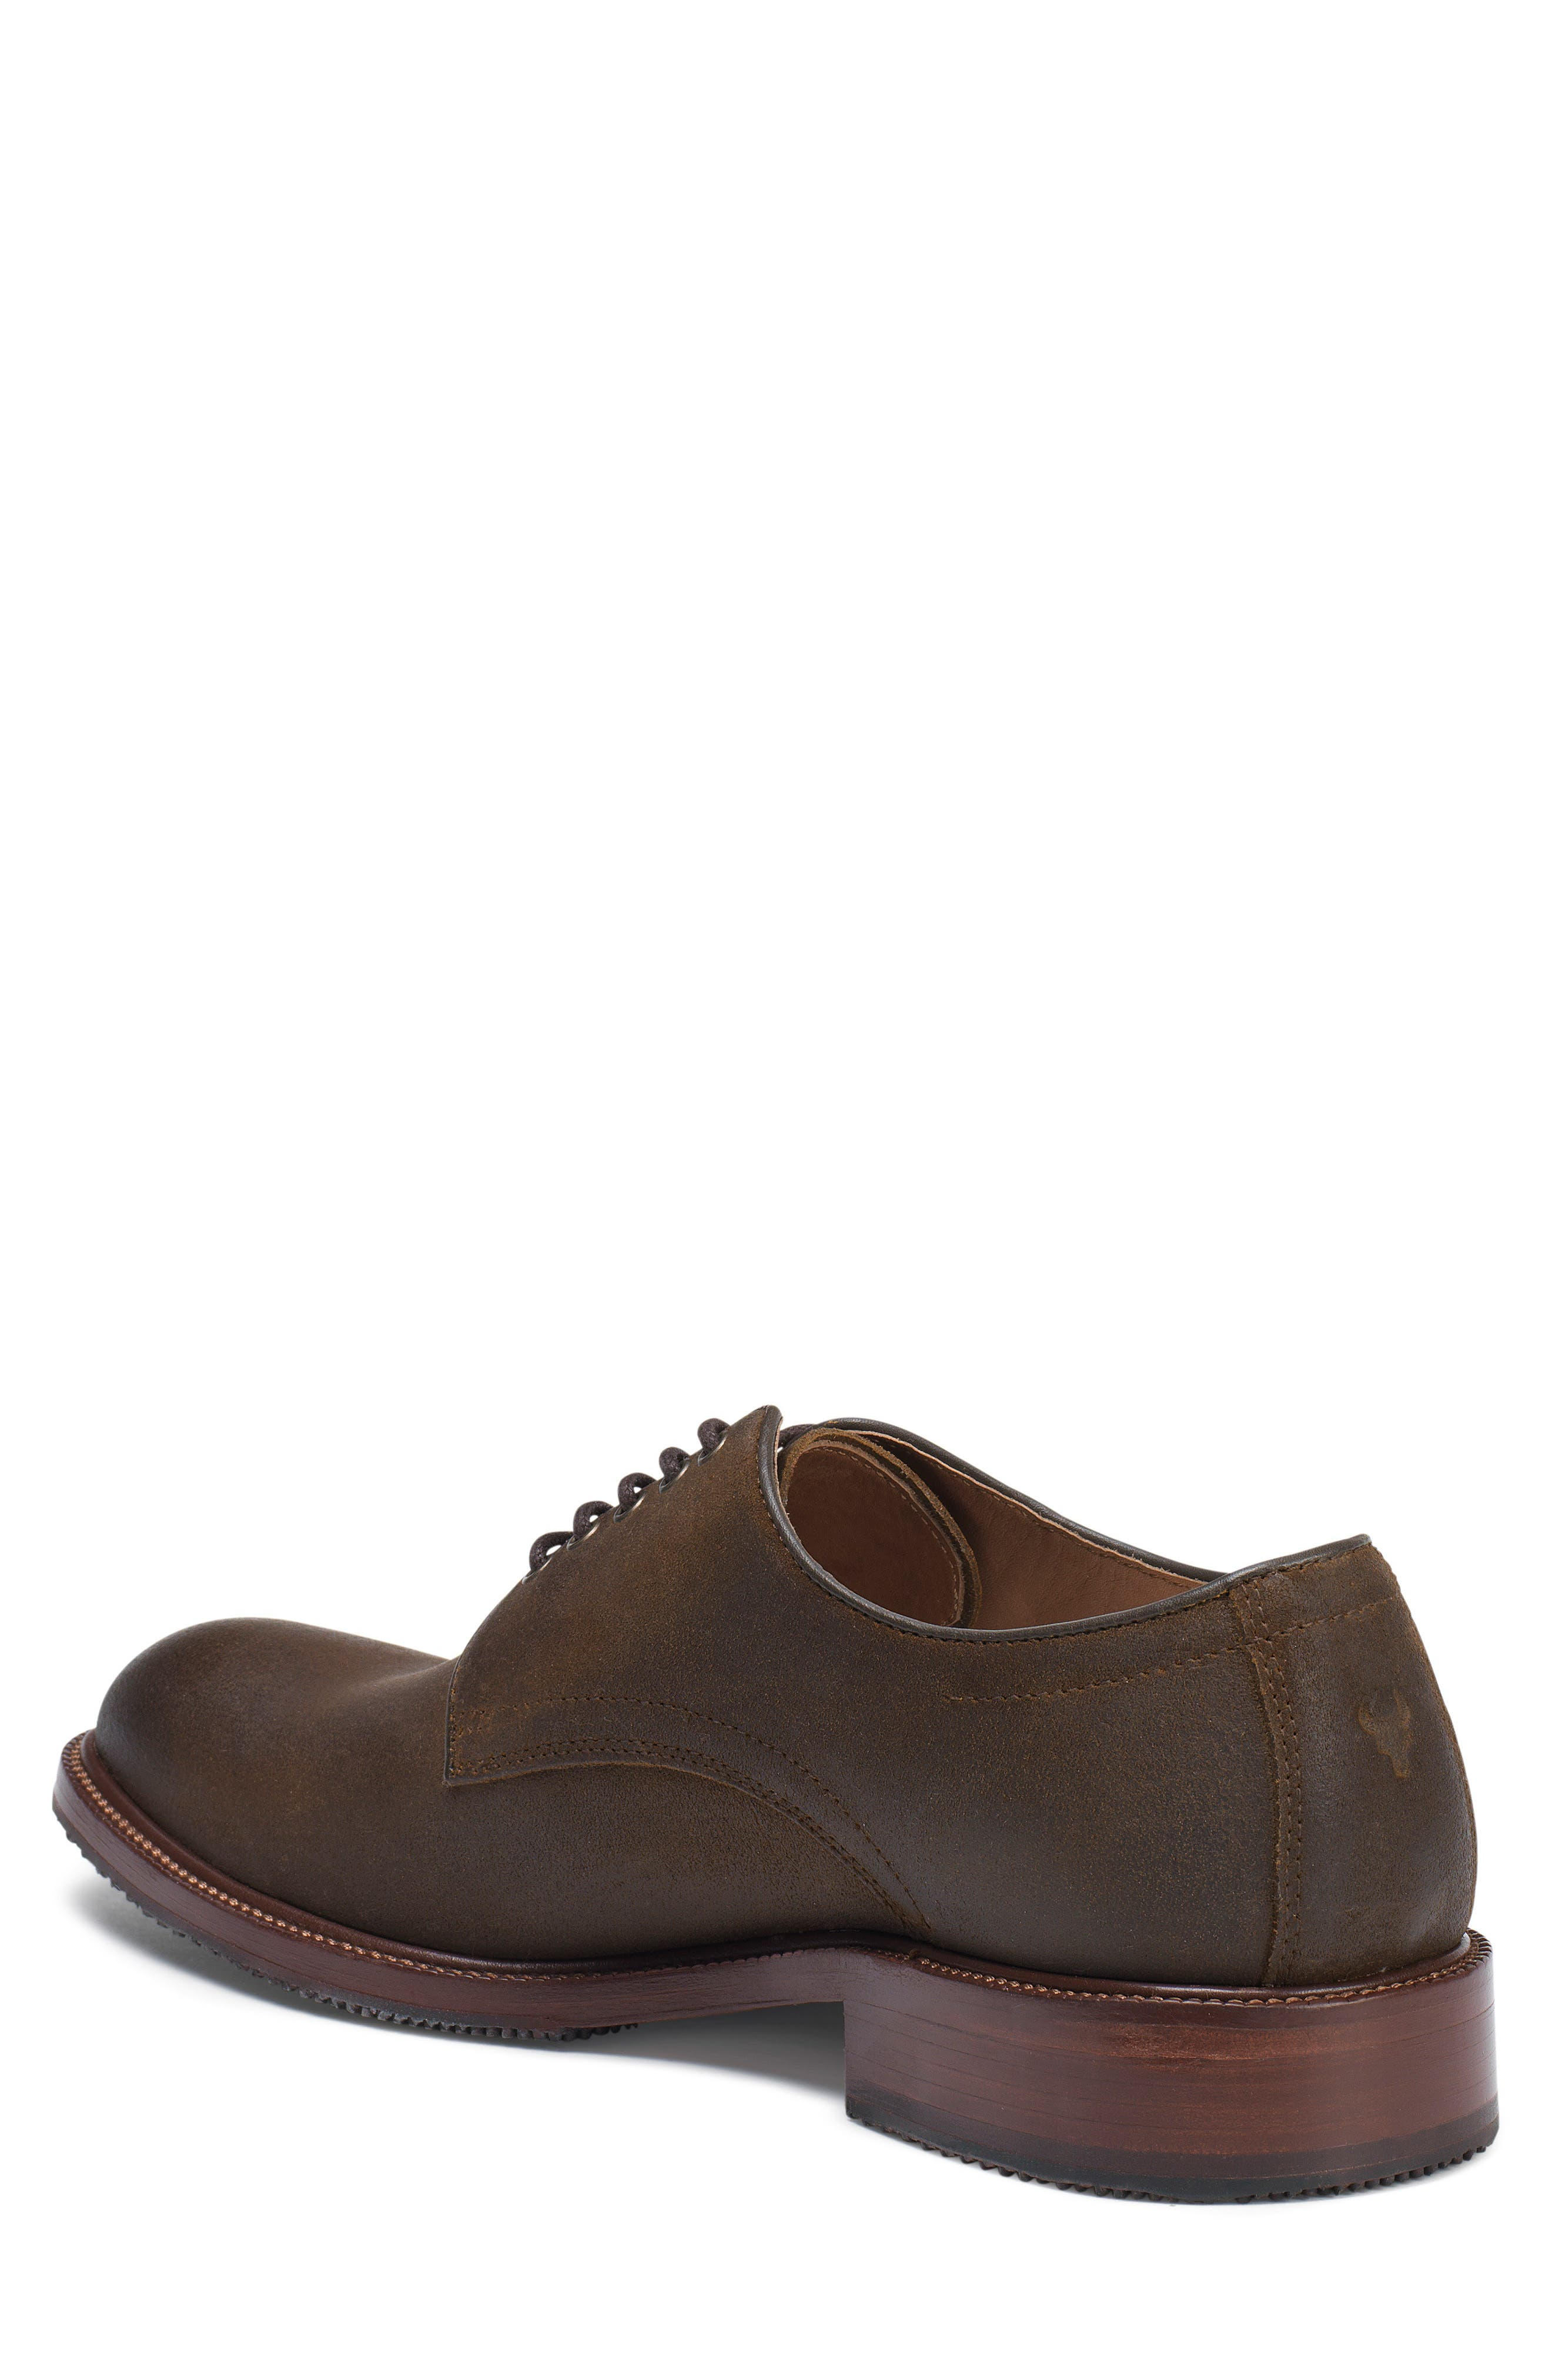 TRASK, Landry Plain Toe Derby, Alternate thumbnail 2, color, BROWN WAXED SUEDE